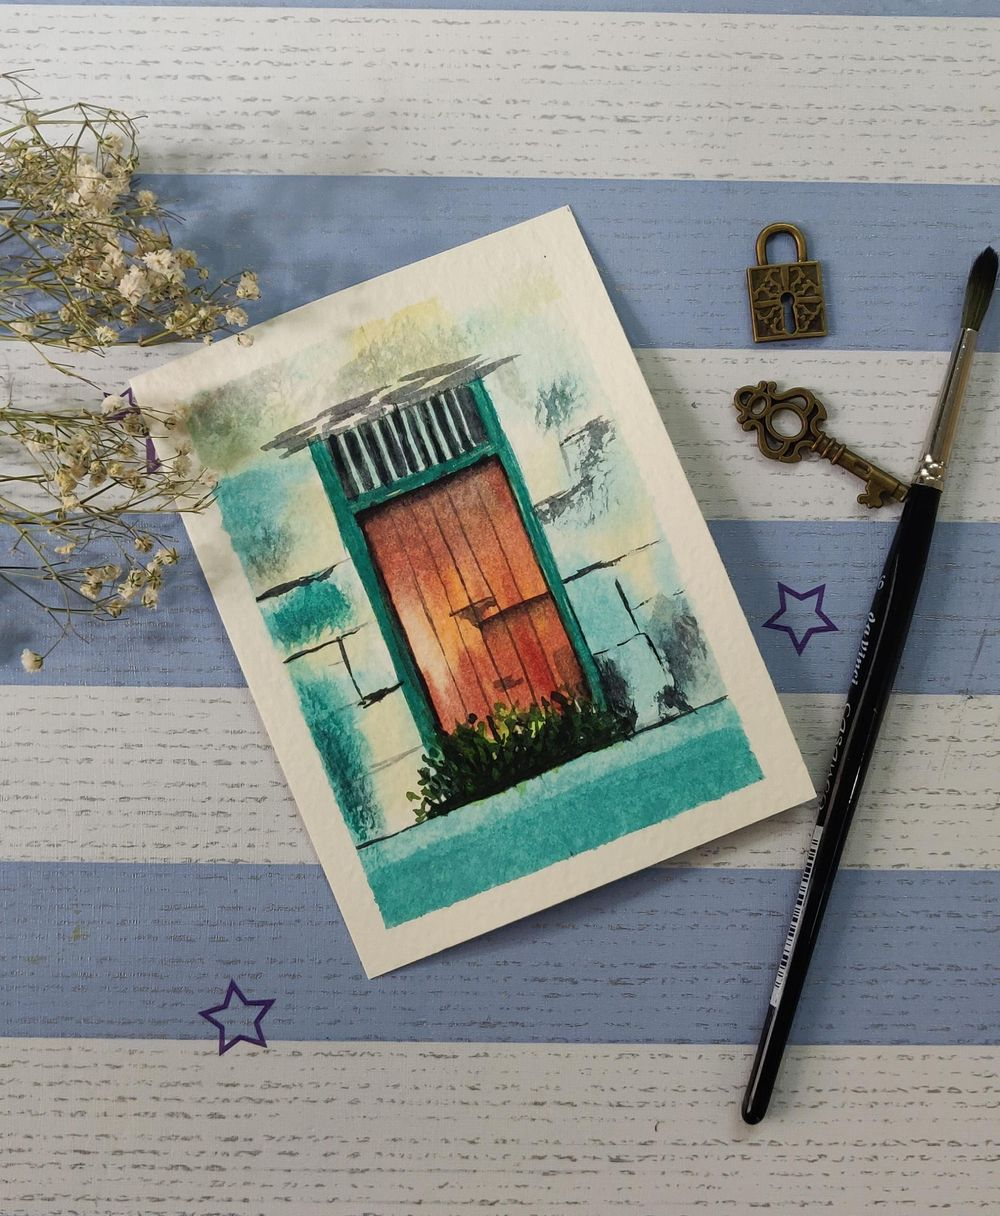 Watercolor postcards: painting old rustic doors in watercolors - image 1 - student project